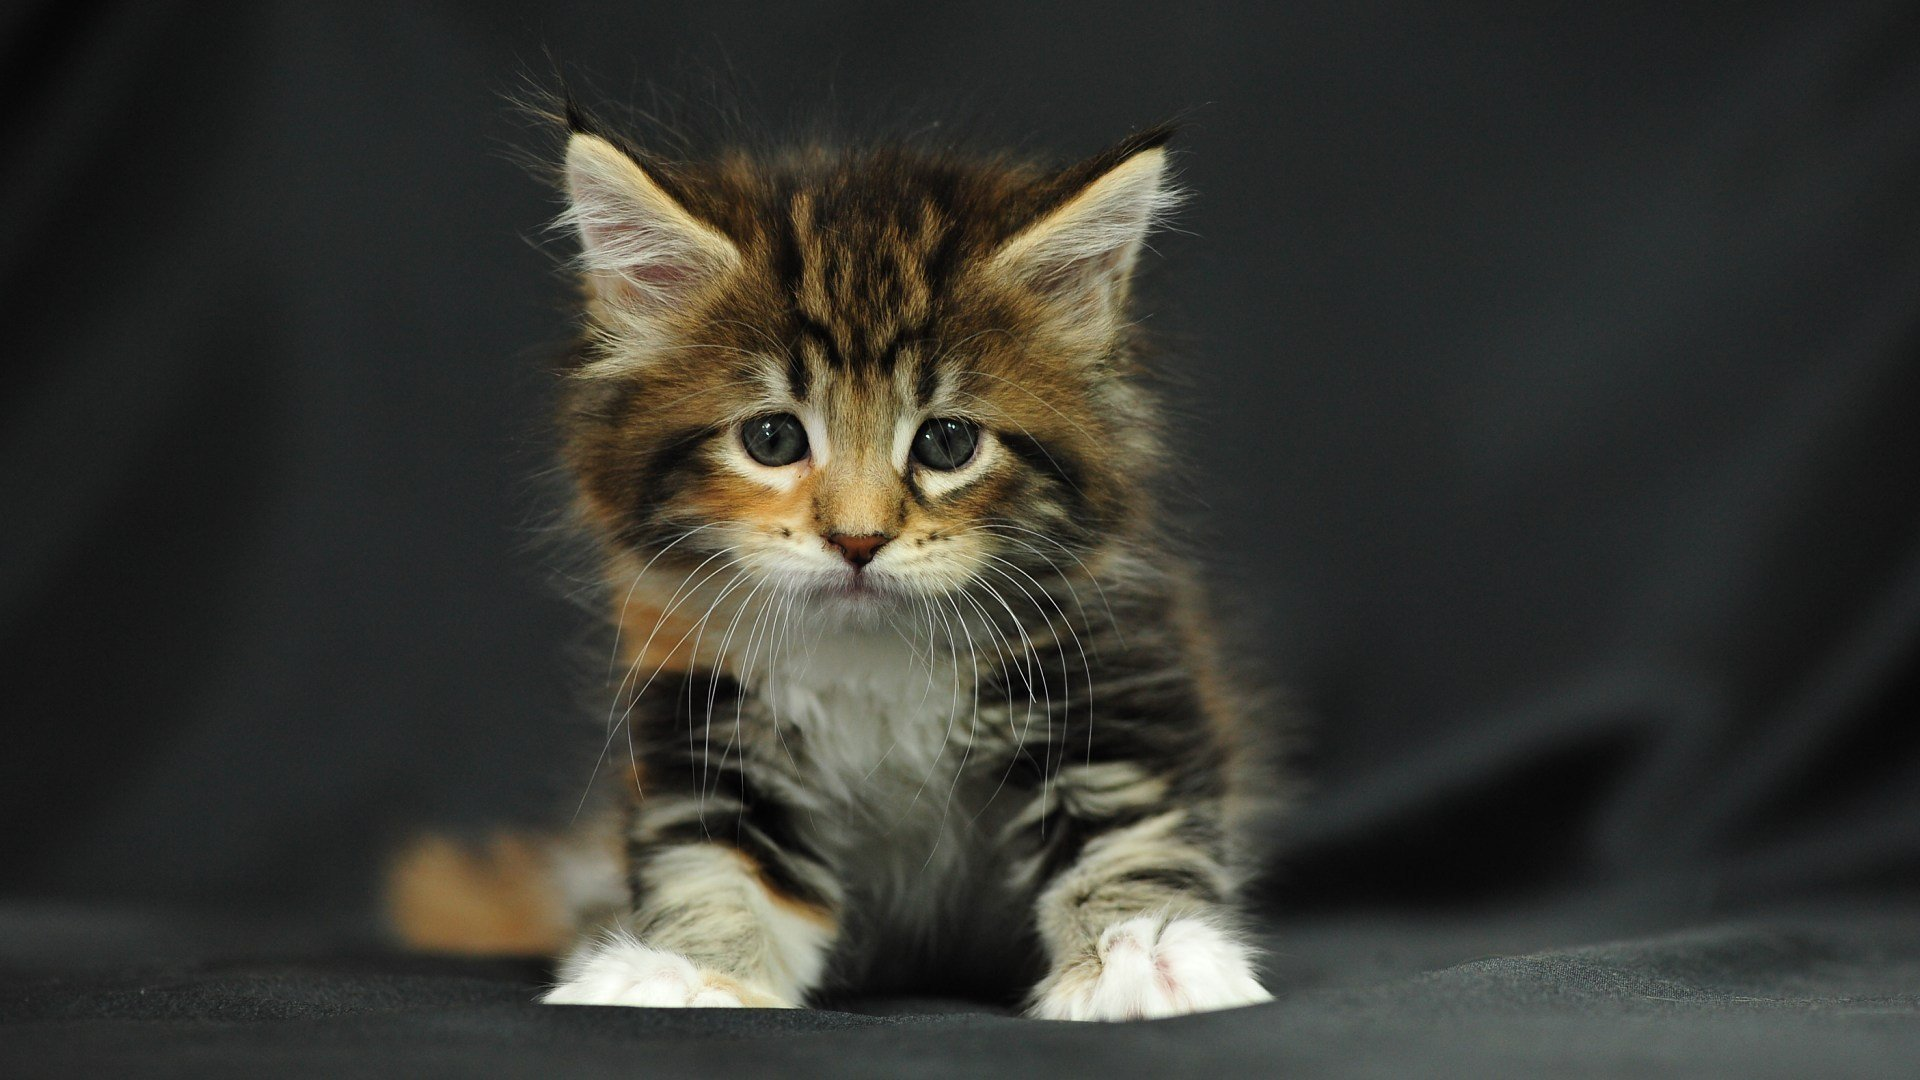 Download full hd 1080p Kitten PC wallpaper ID:429471 for free